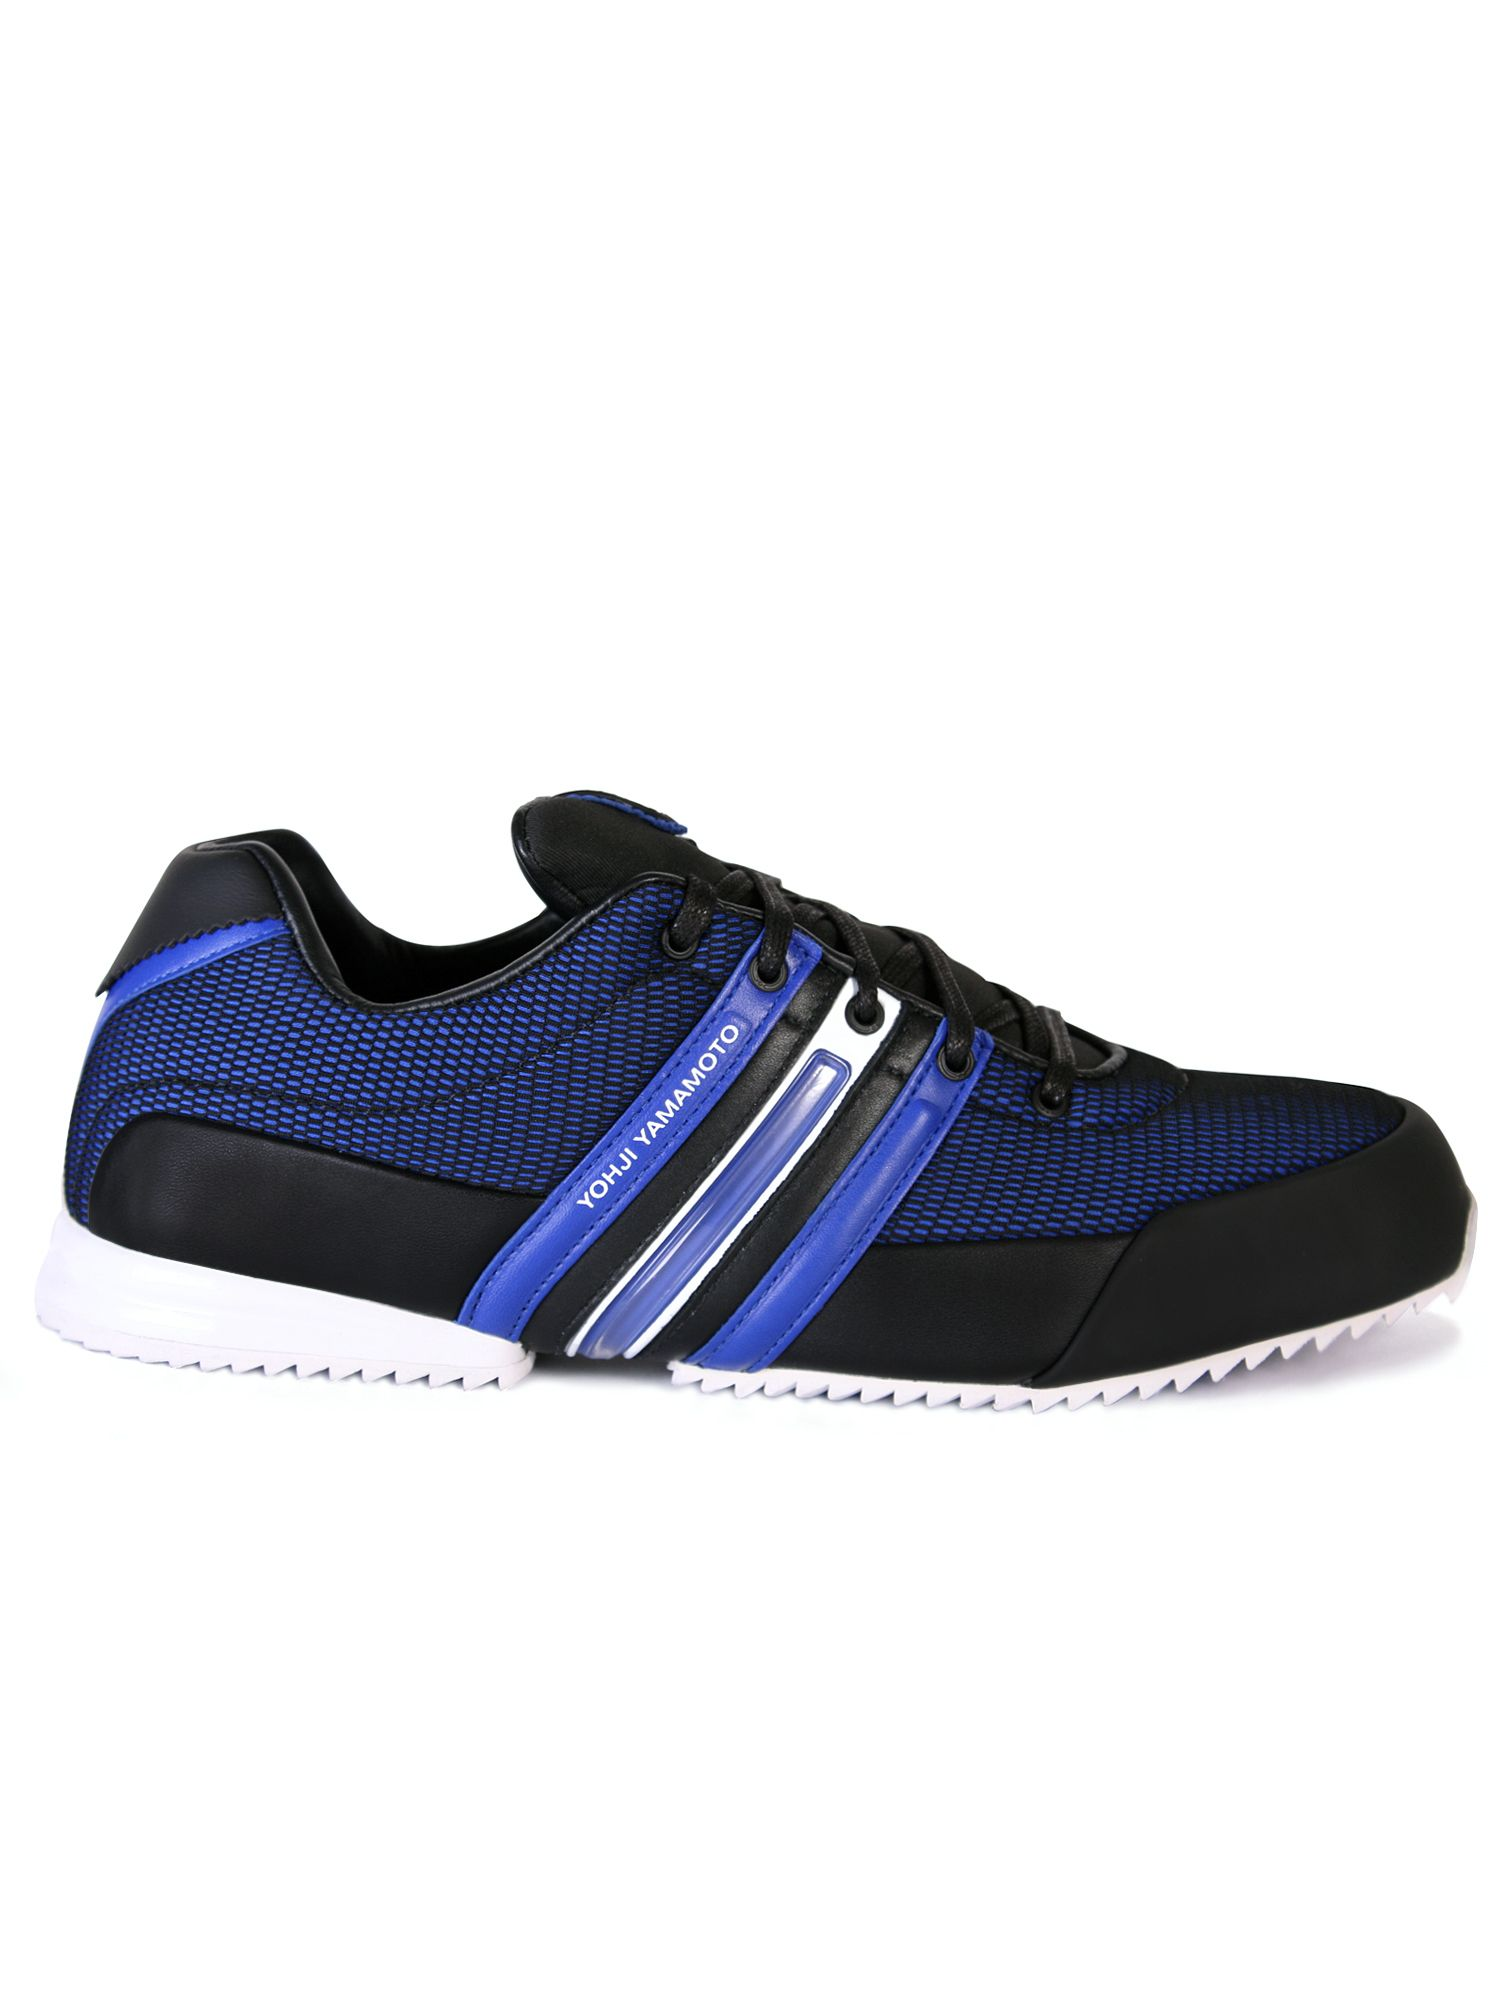 Y3 Blue Sprint Trainers Schuhe